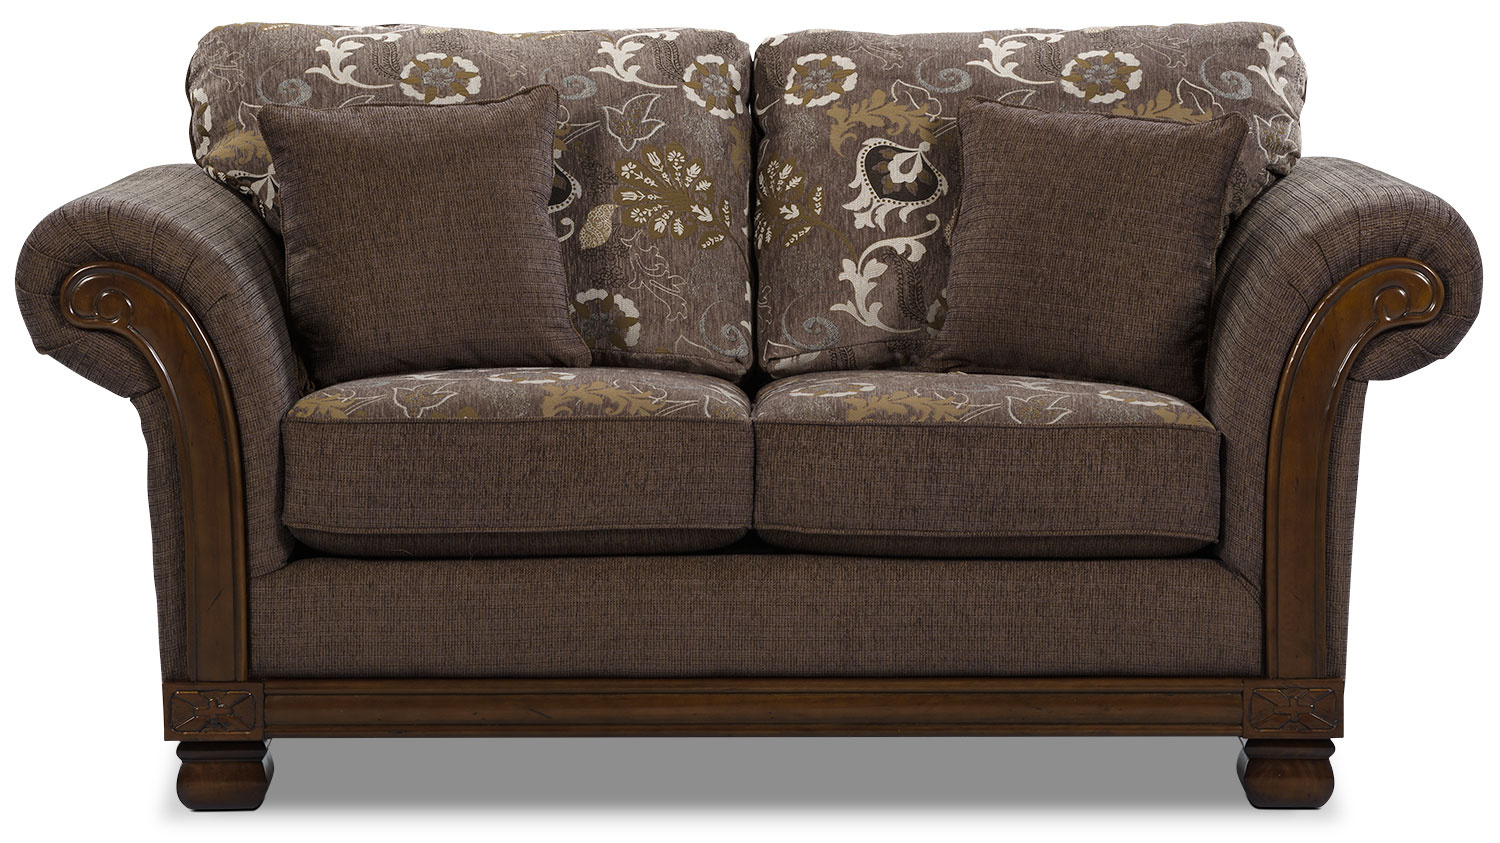 Hazel chenille full size sofa bed quartz the brick Chenille sofa and loveseat